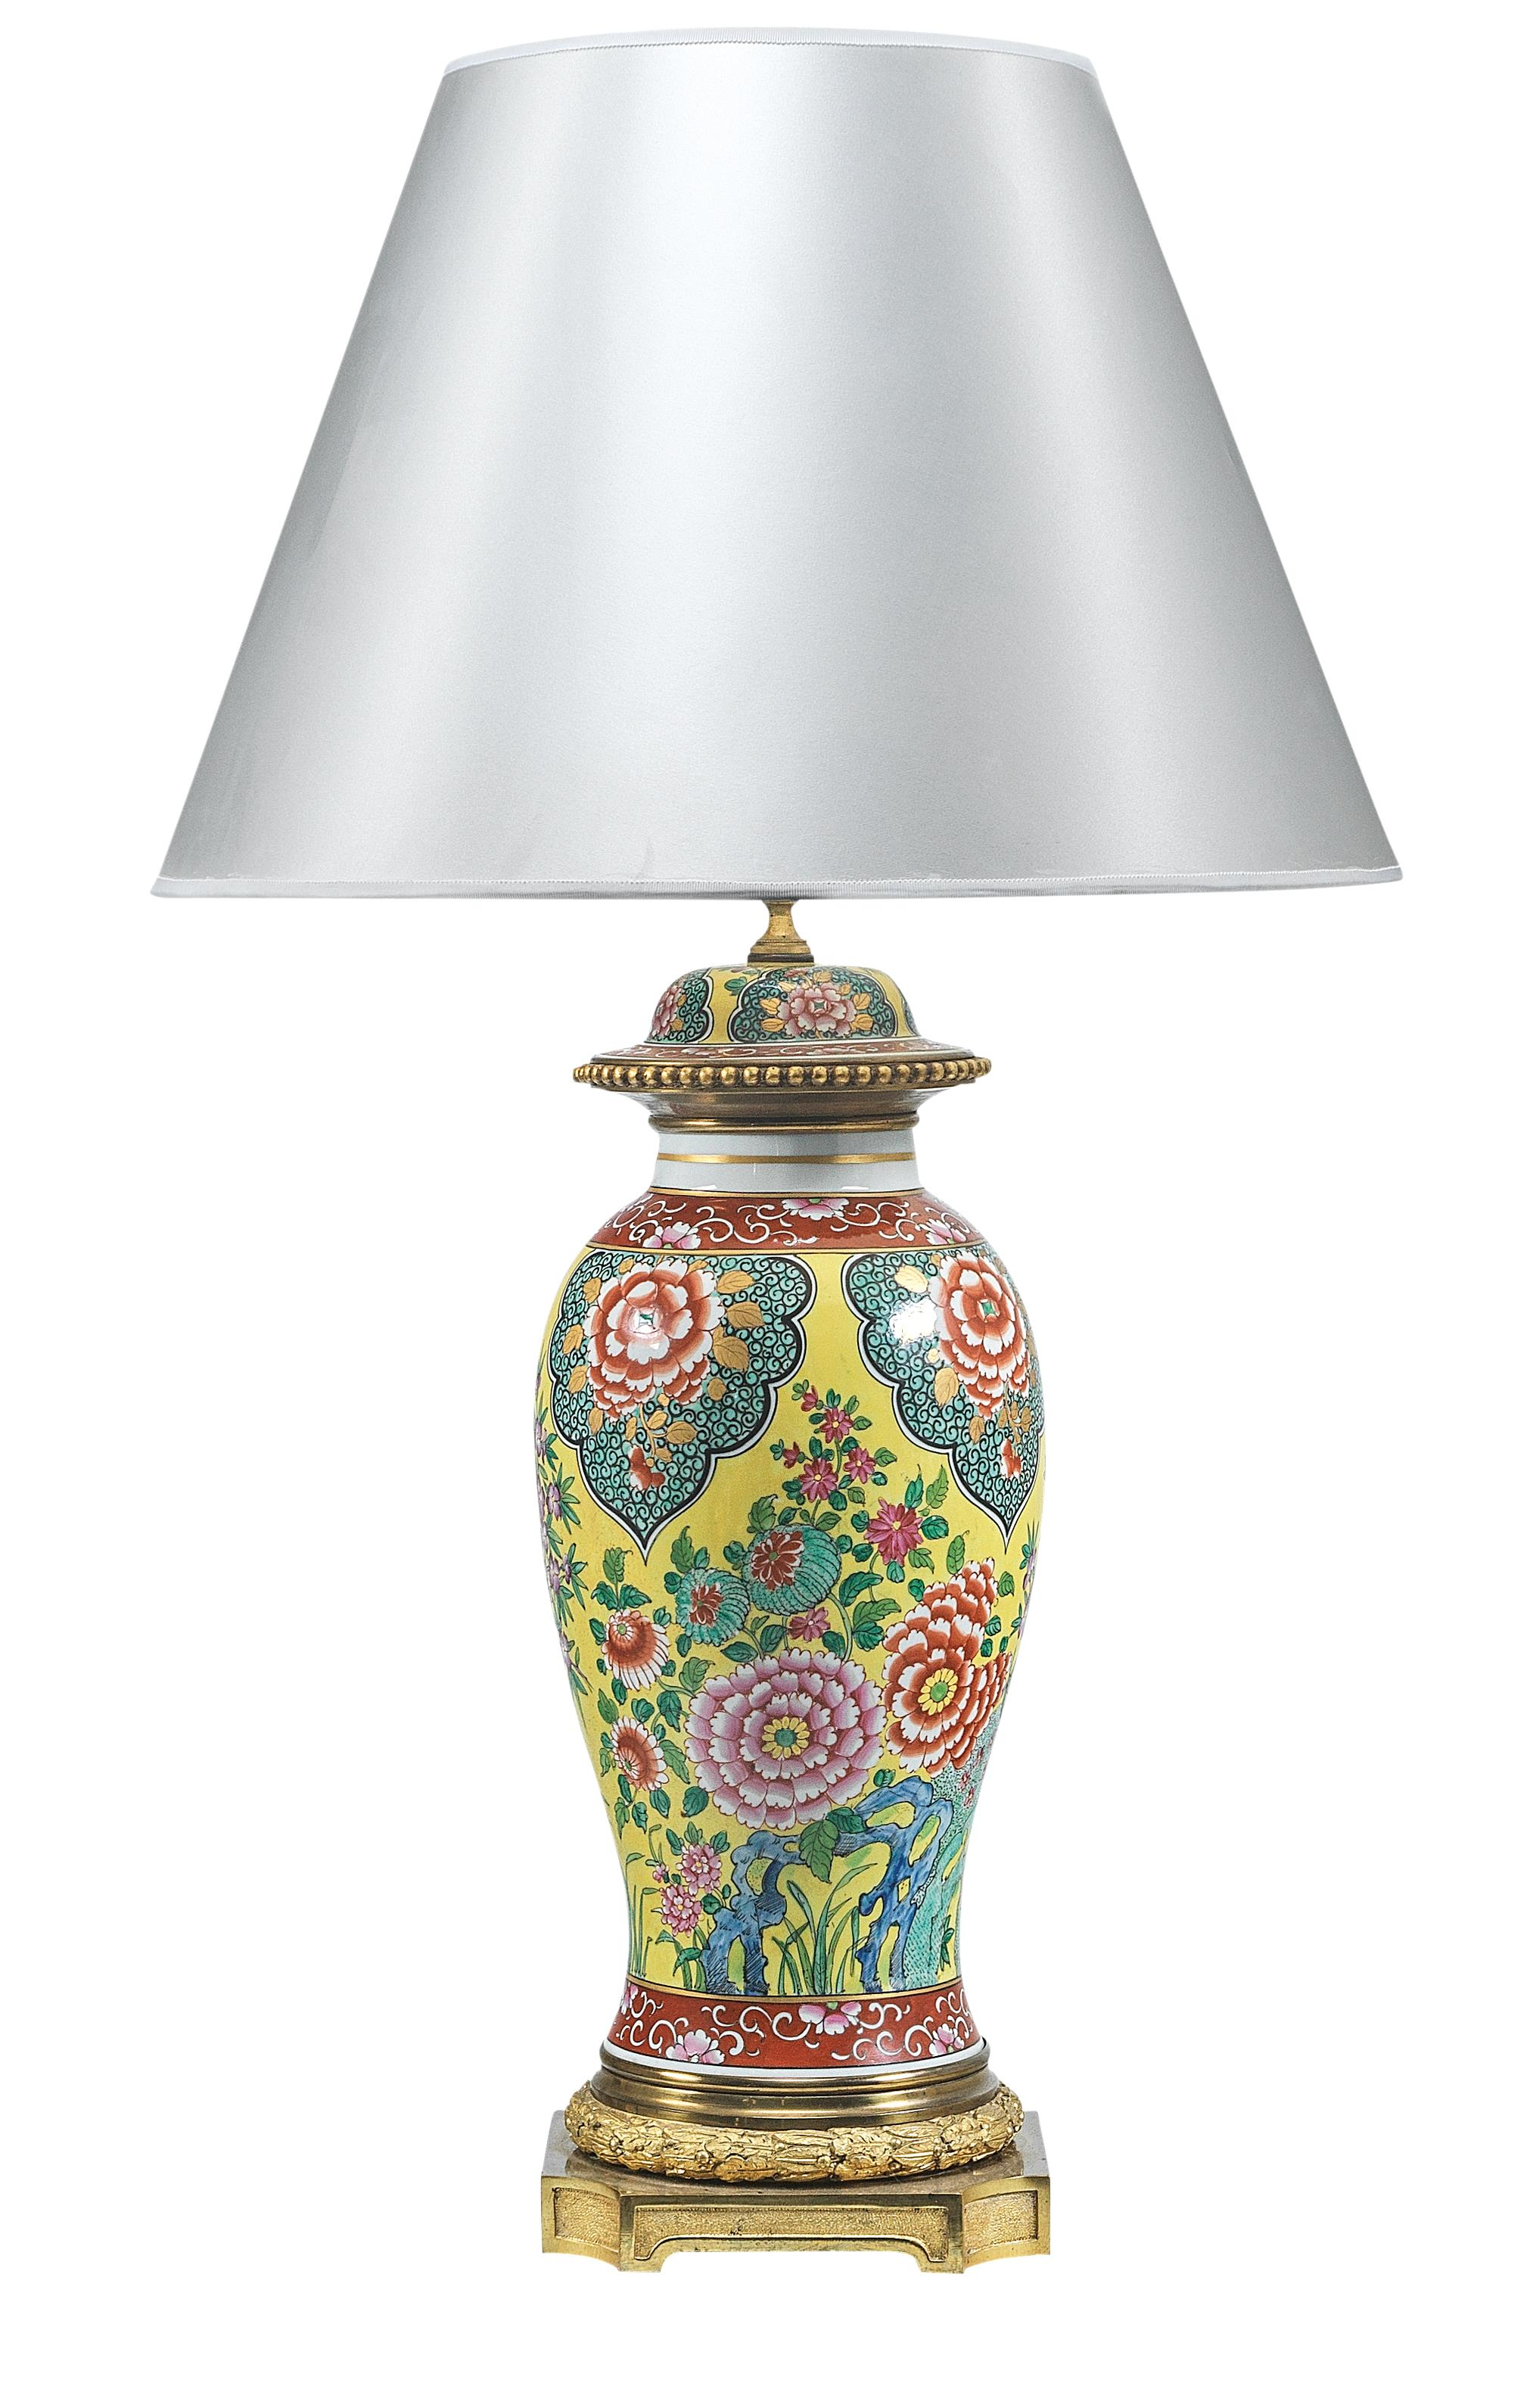 A Large Decorative Table Lamp Works Of Art 2020 11 05 Estimate Eur 2 400 To Eur 3 200 Dorotheum